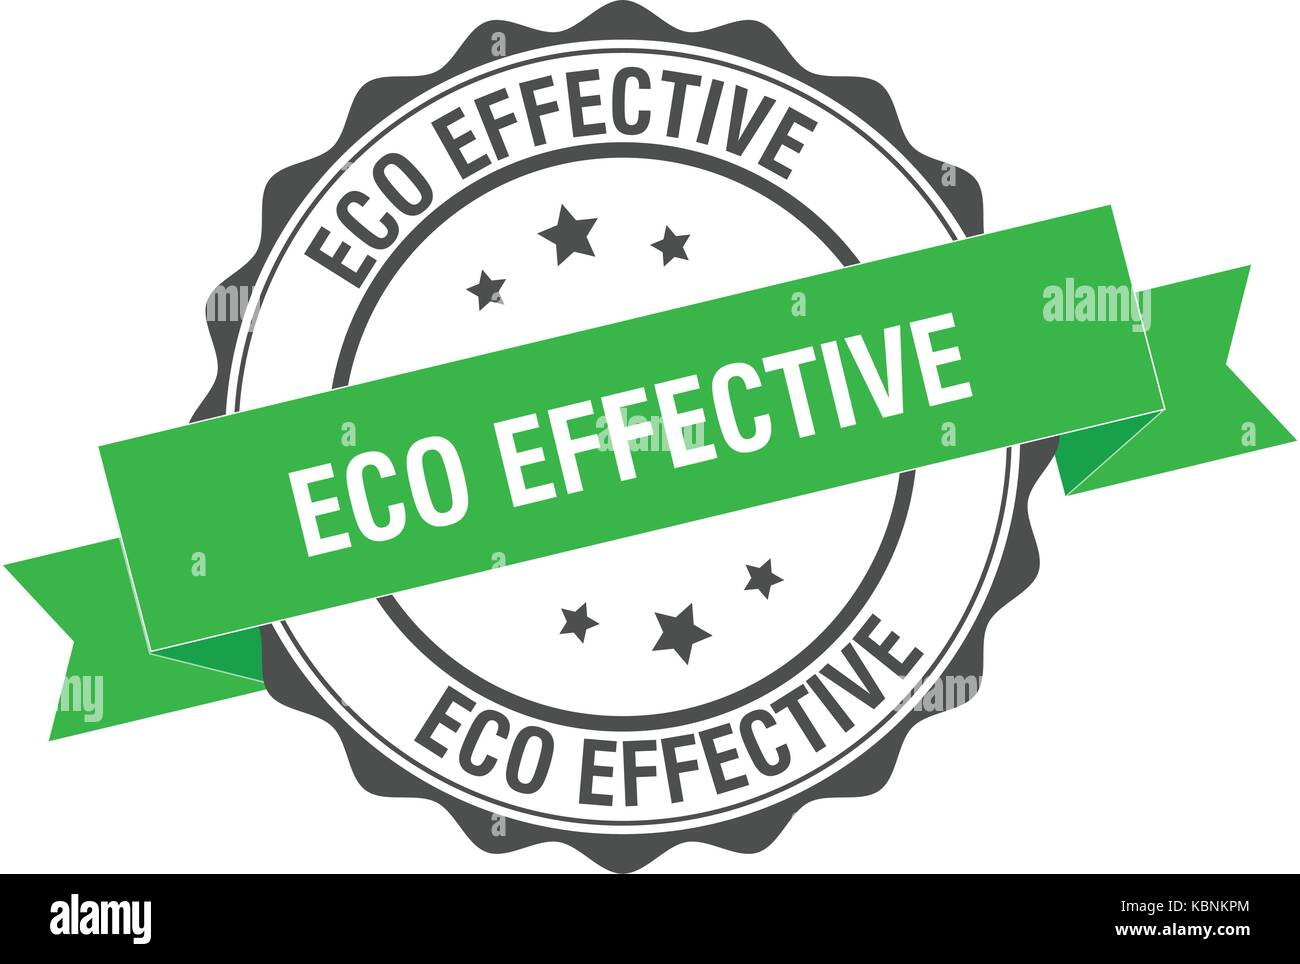 Eco effective stamp illustration - Stock Image